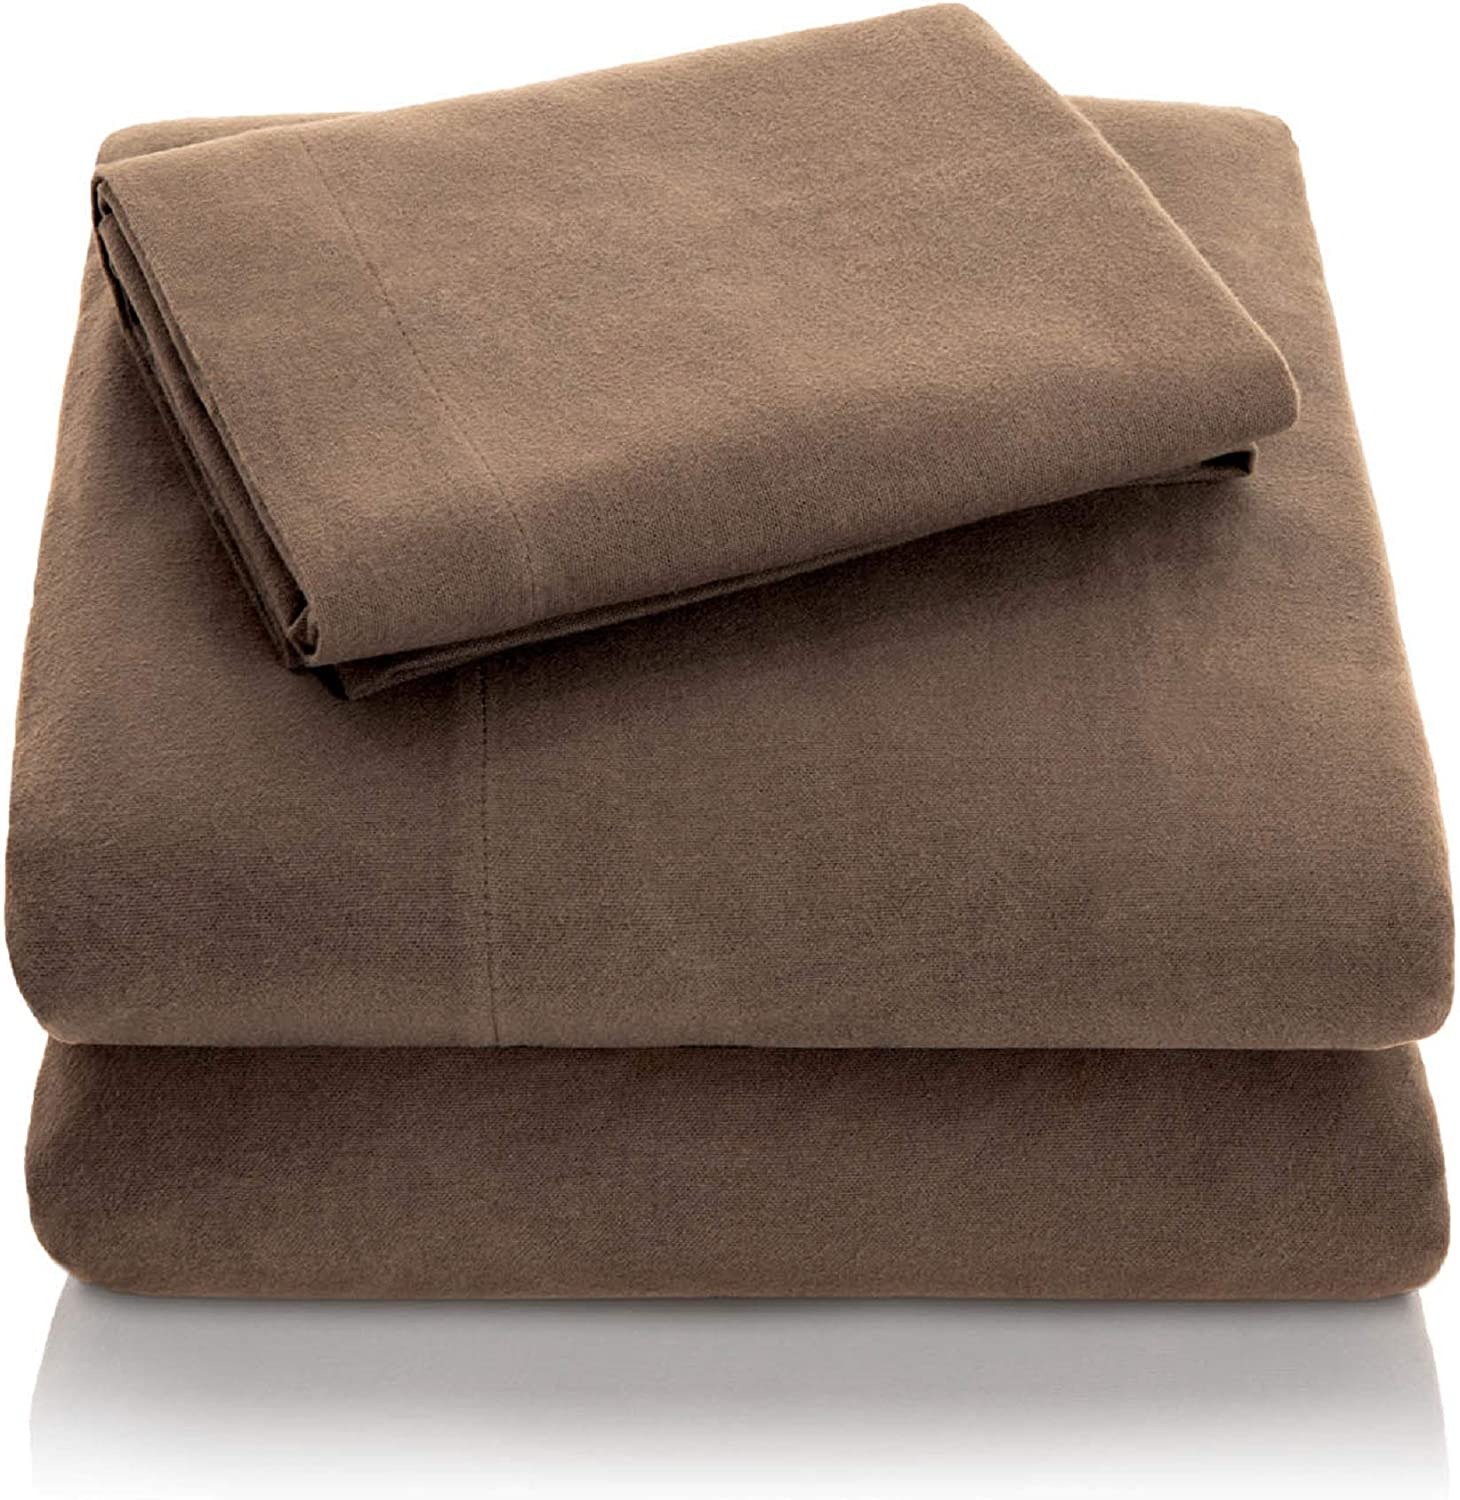 Amazon Com Malouf Heavyweight Portuguese Flannel Sheet Set 100 Cotton Pill Resistant Bedding California King California King Coffee Home Kitchen